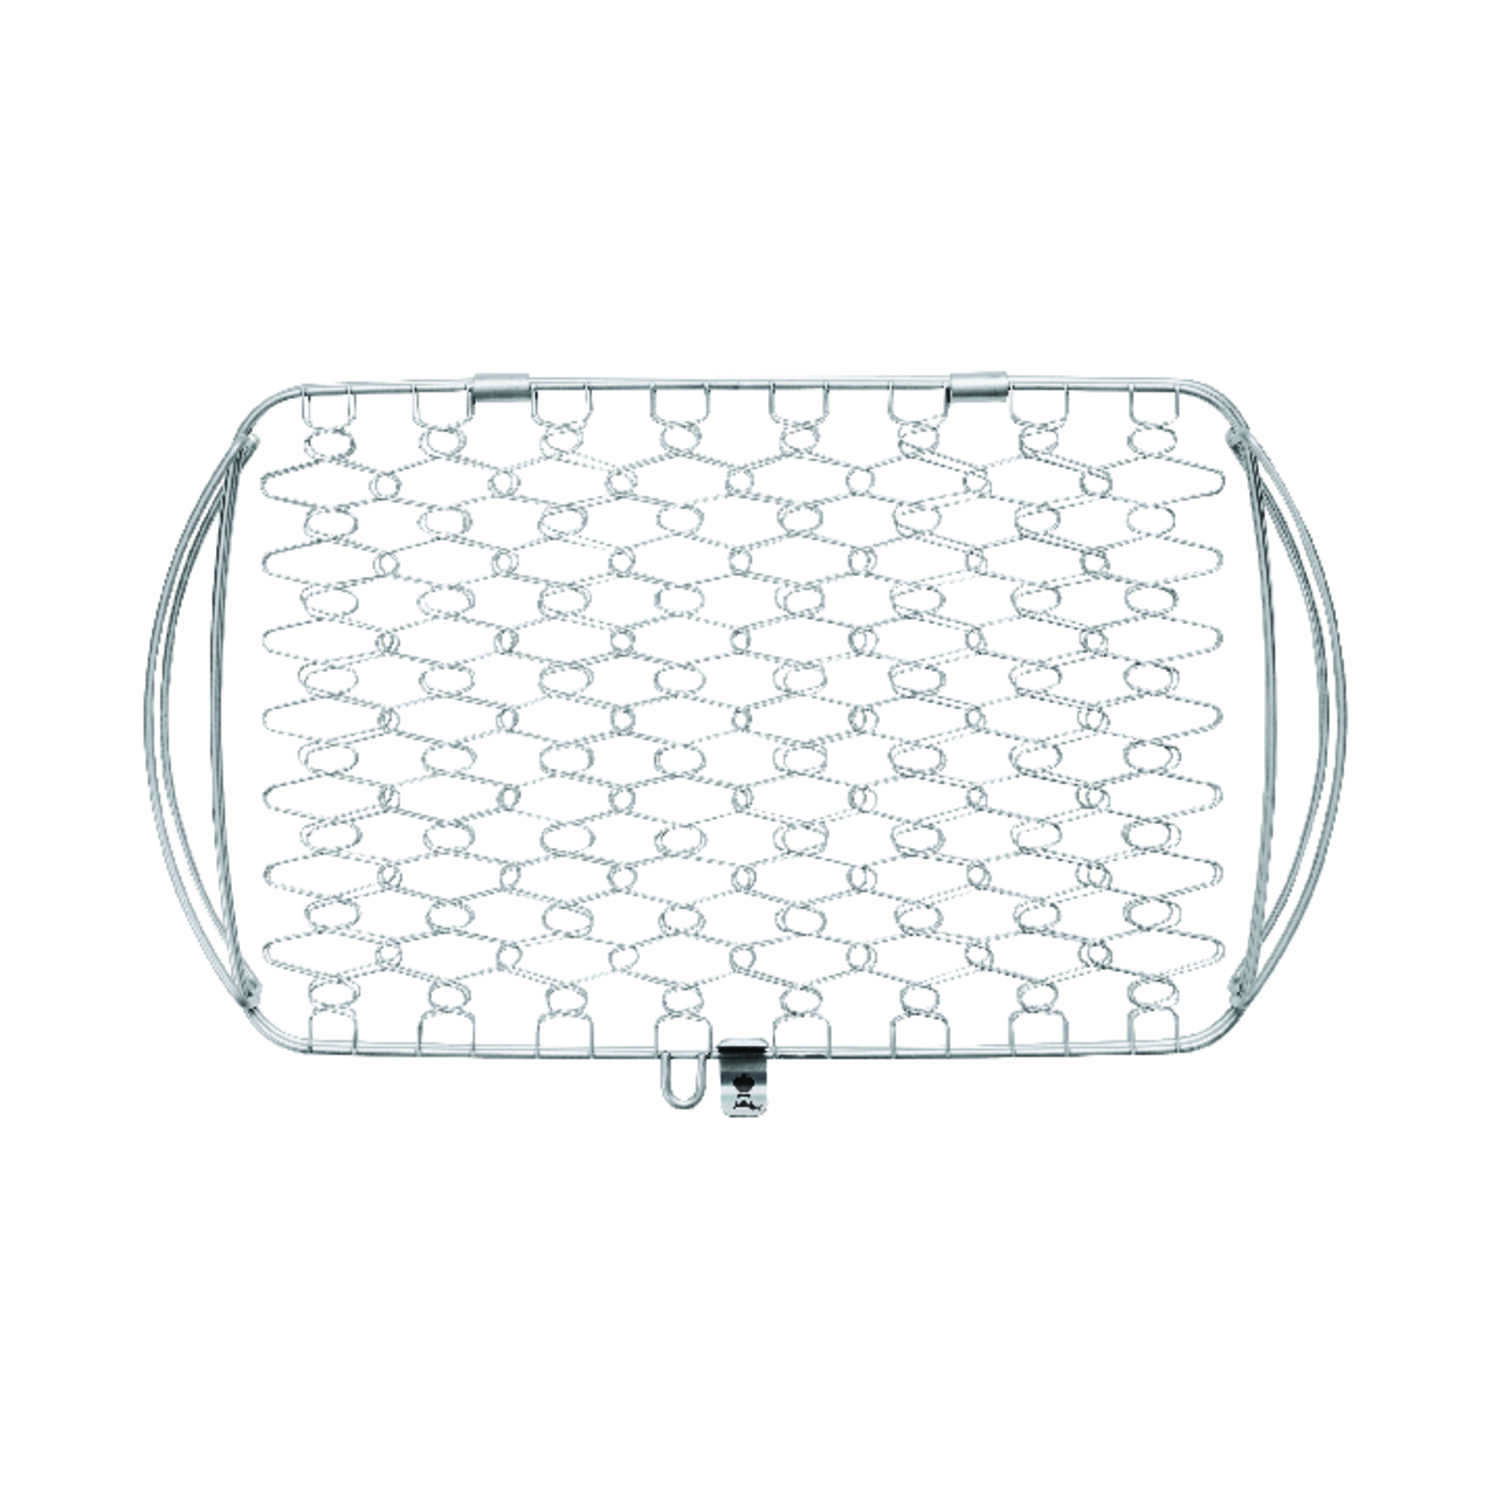 Weber  Grill Basket  Stainless Steel